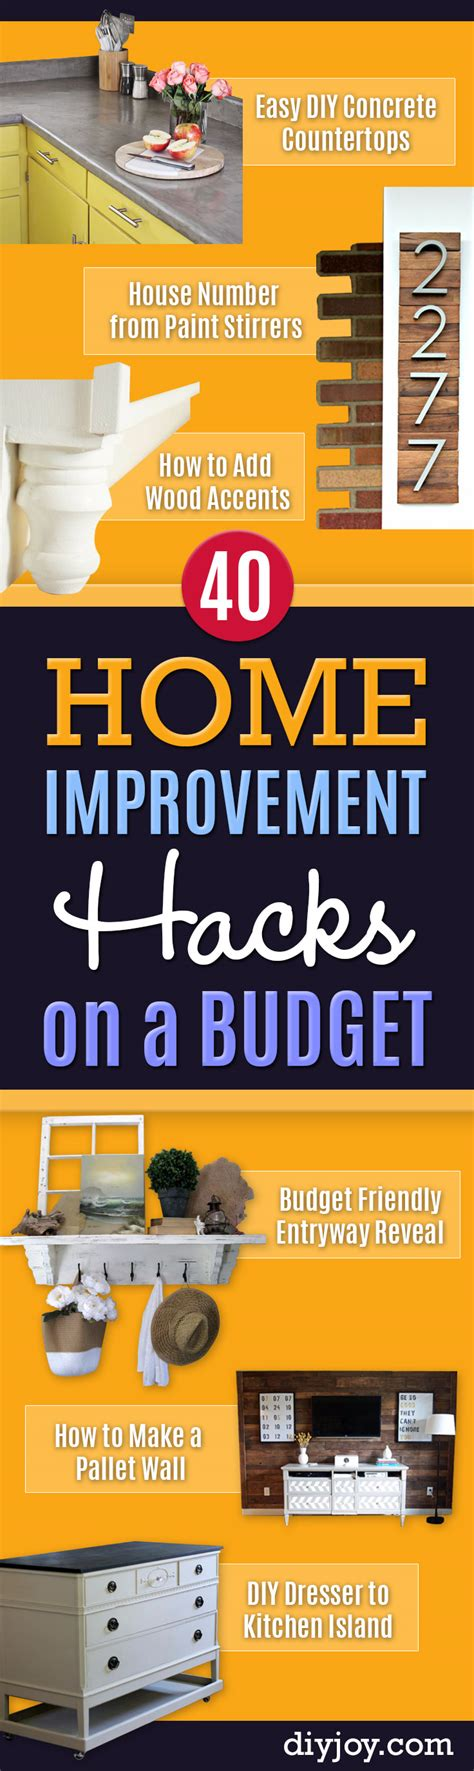 40 home improvement ideas for those on a serious budget